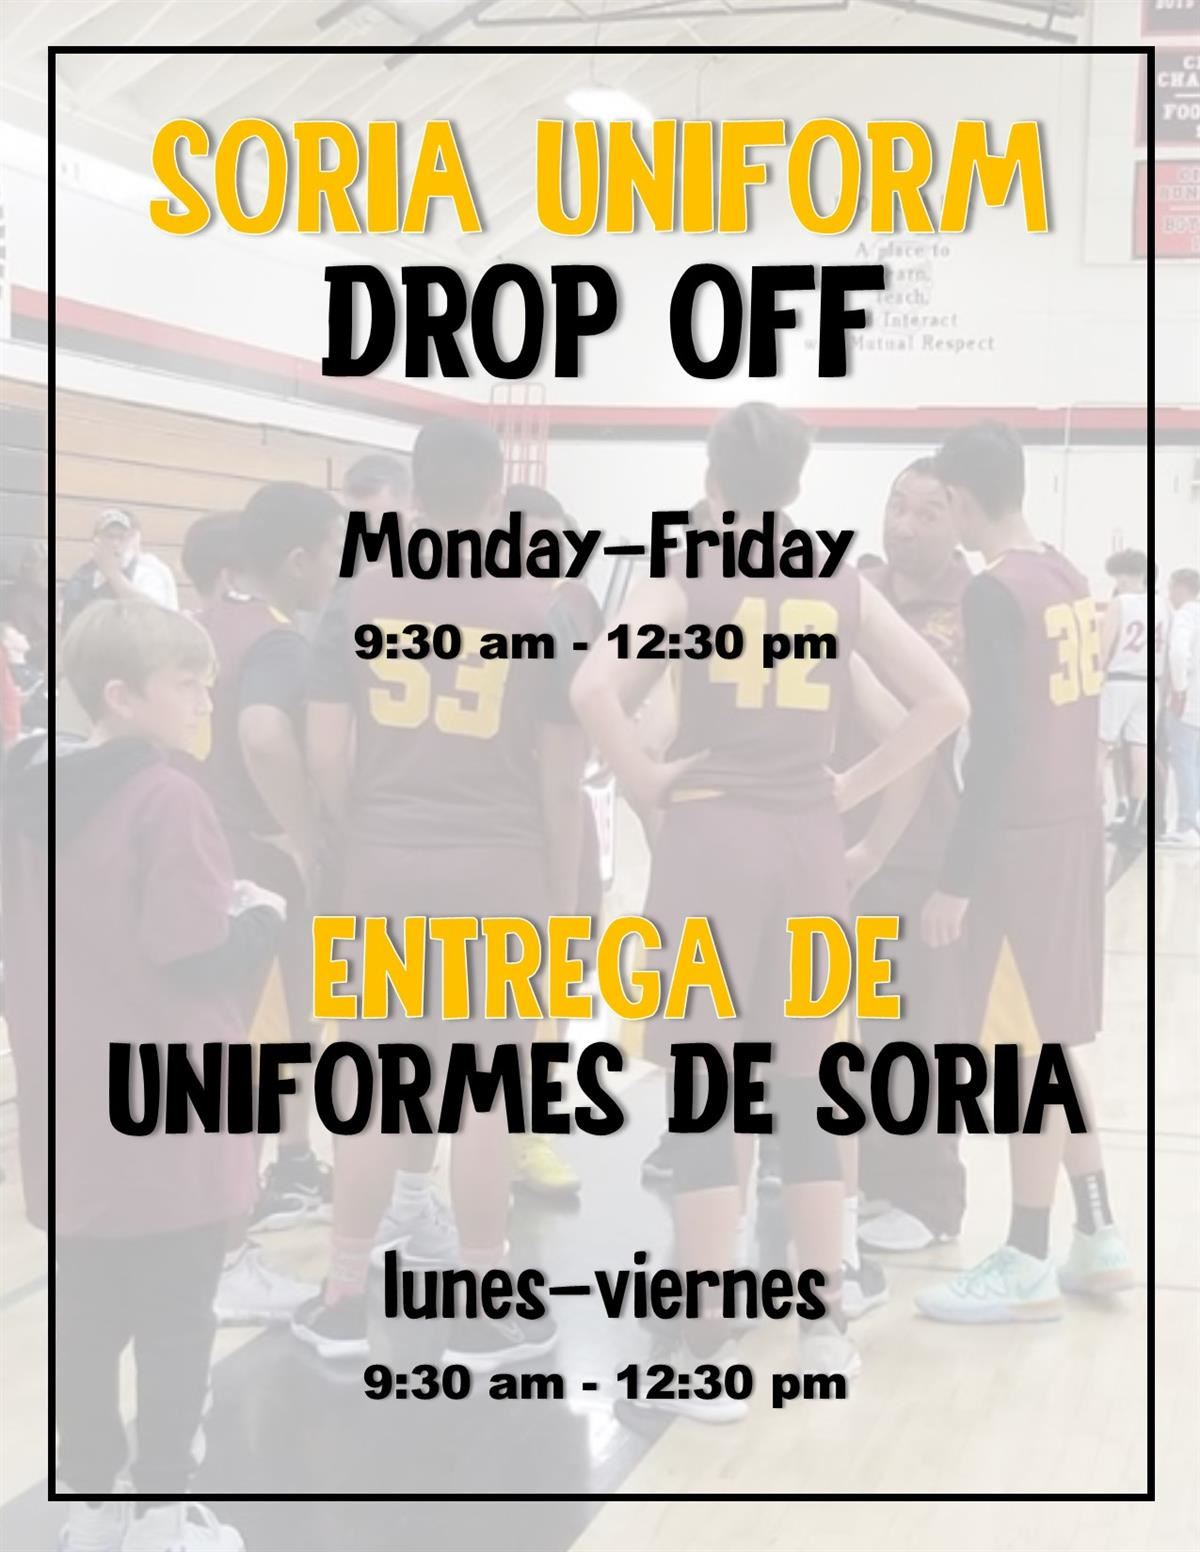 Uniform Drop Off